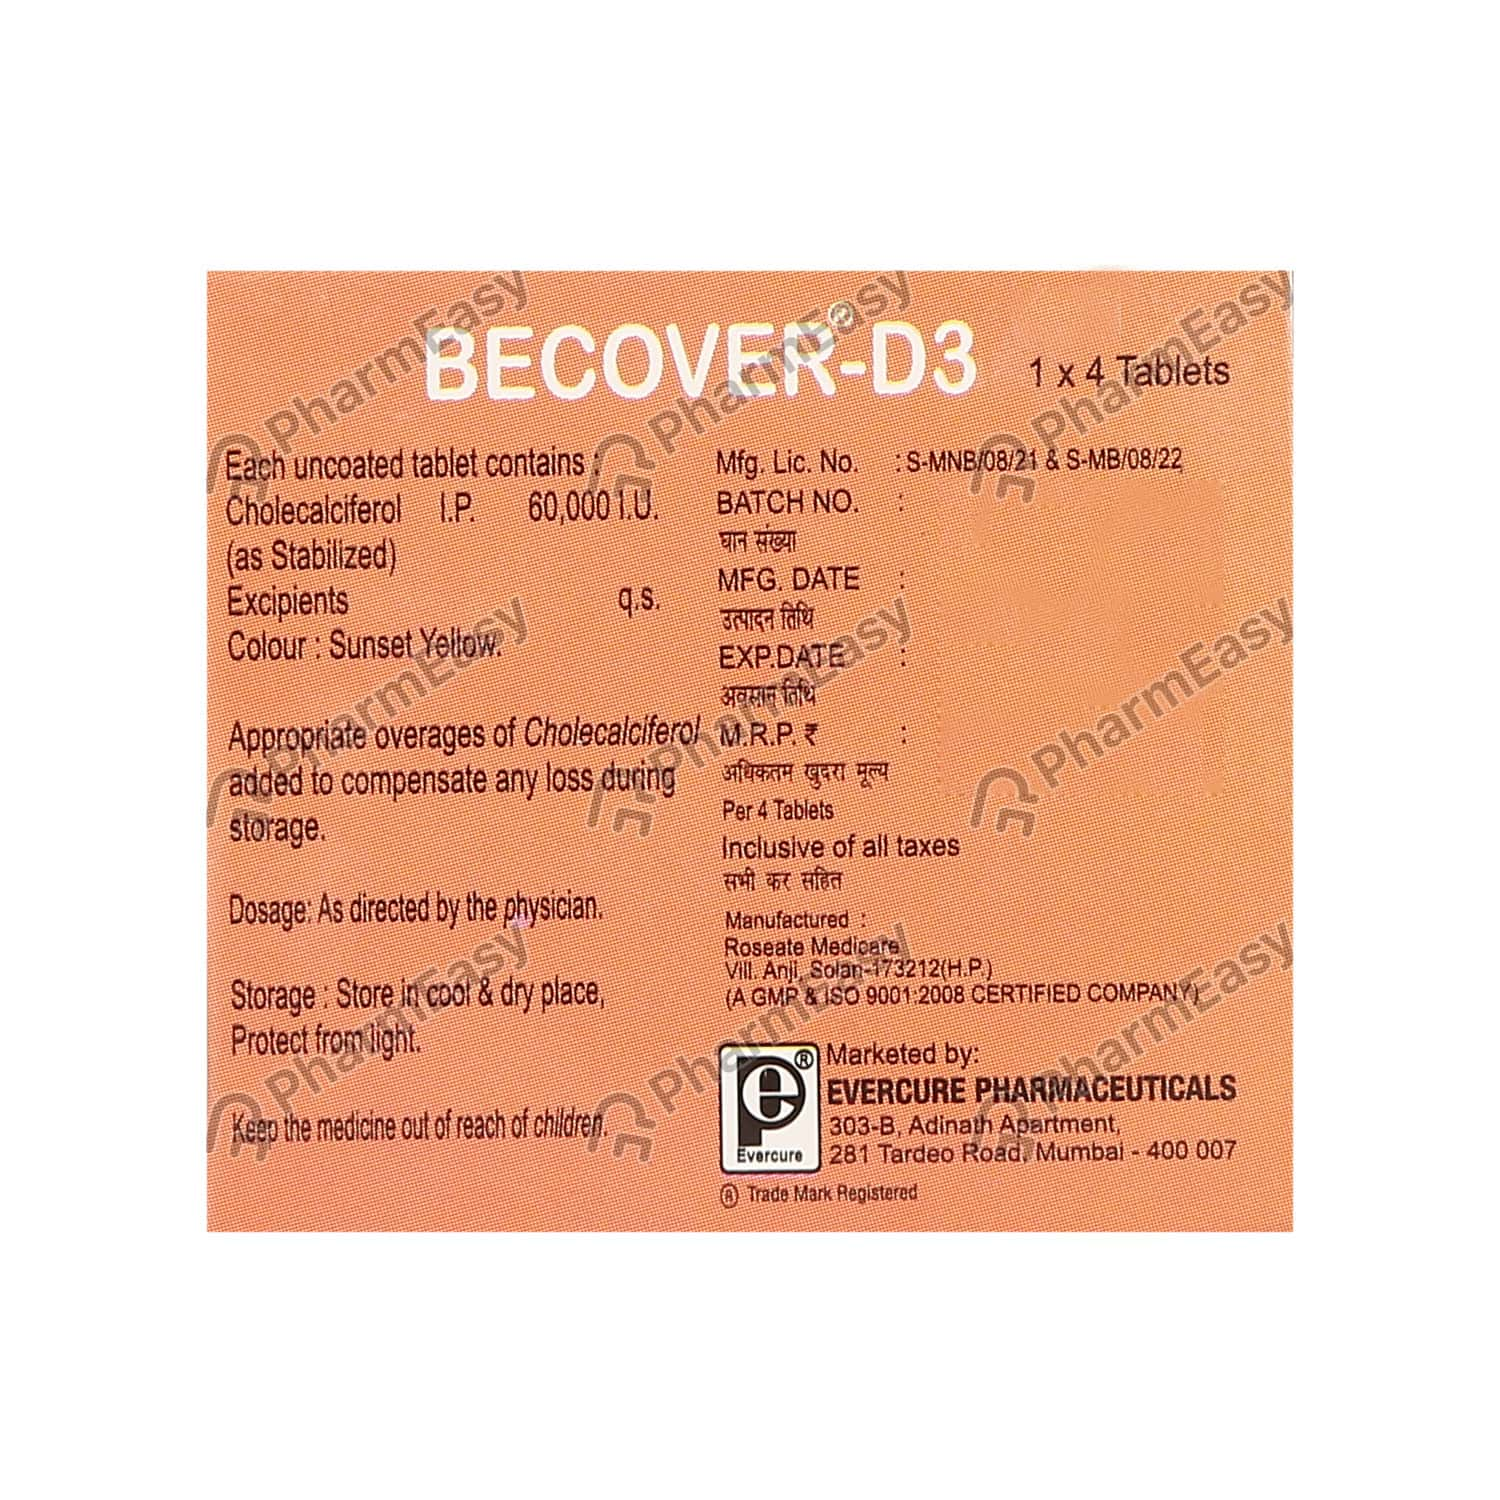 Becover D3 Strip Of 4 Tablets